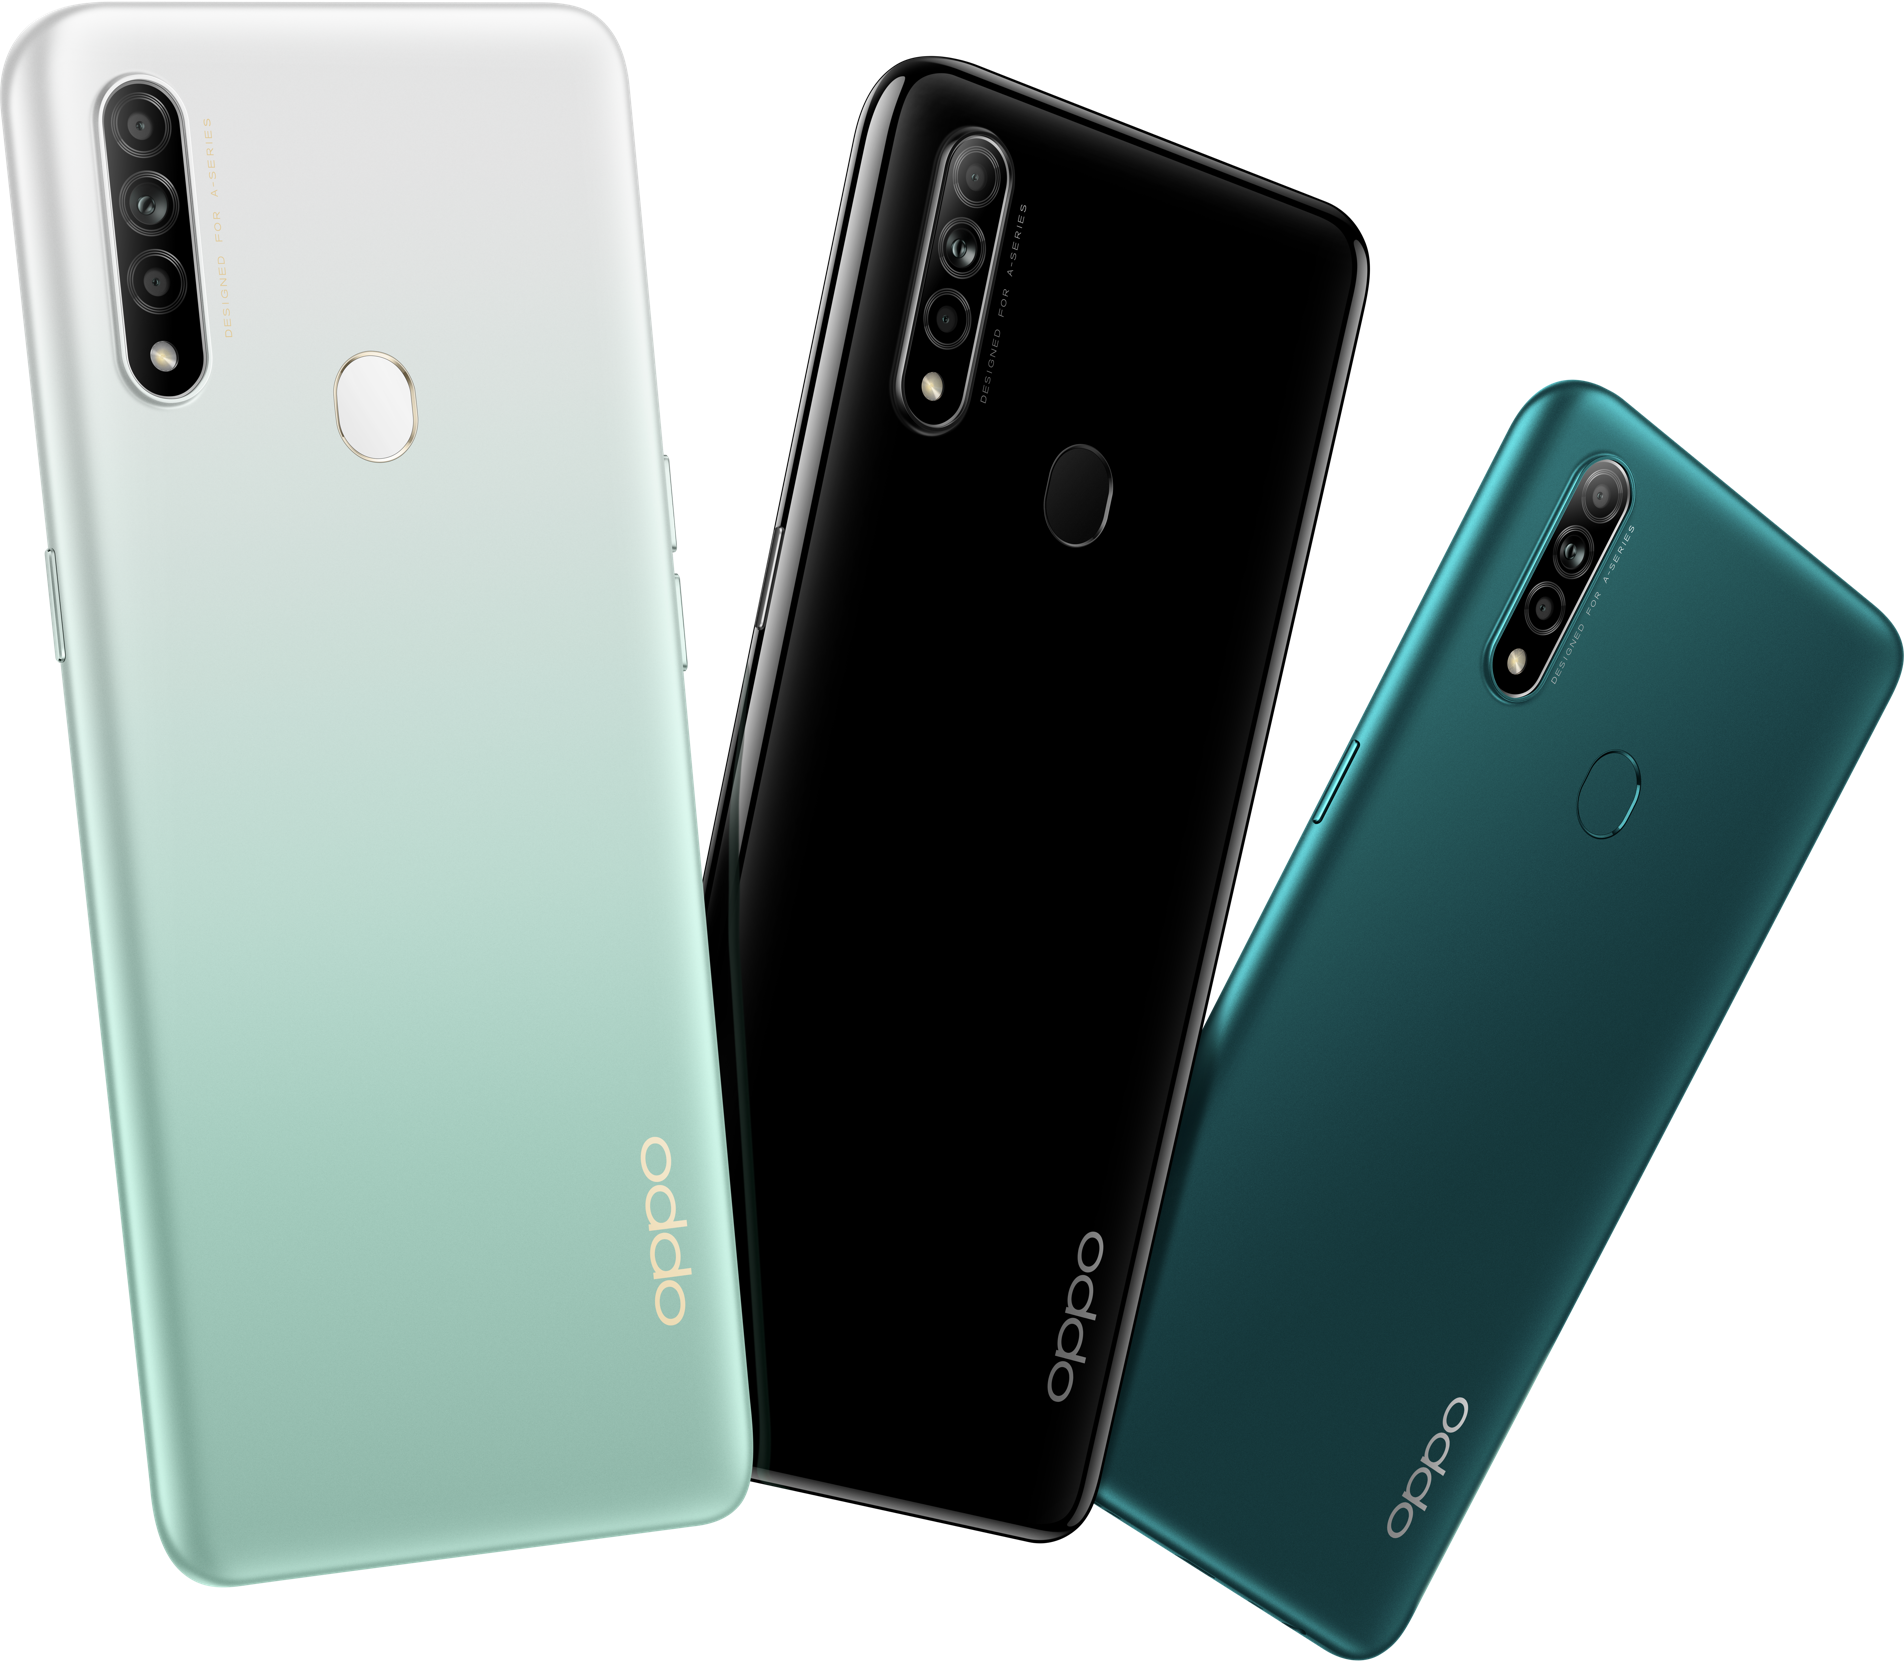 OPPO A31 – AI Triple Camera, Capture Your Moment | OPPO Global